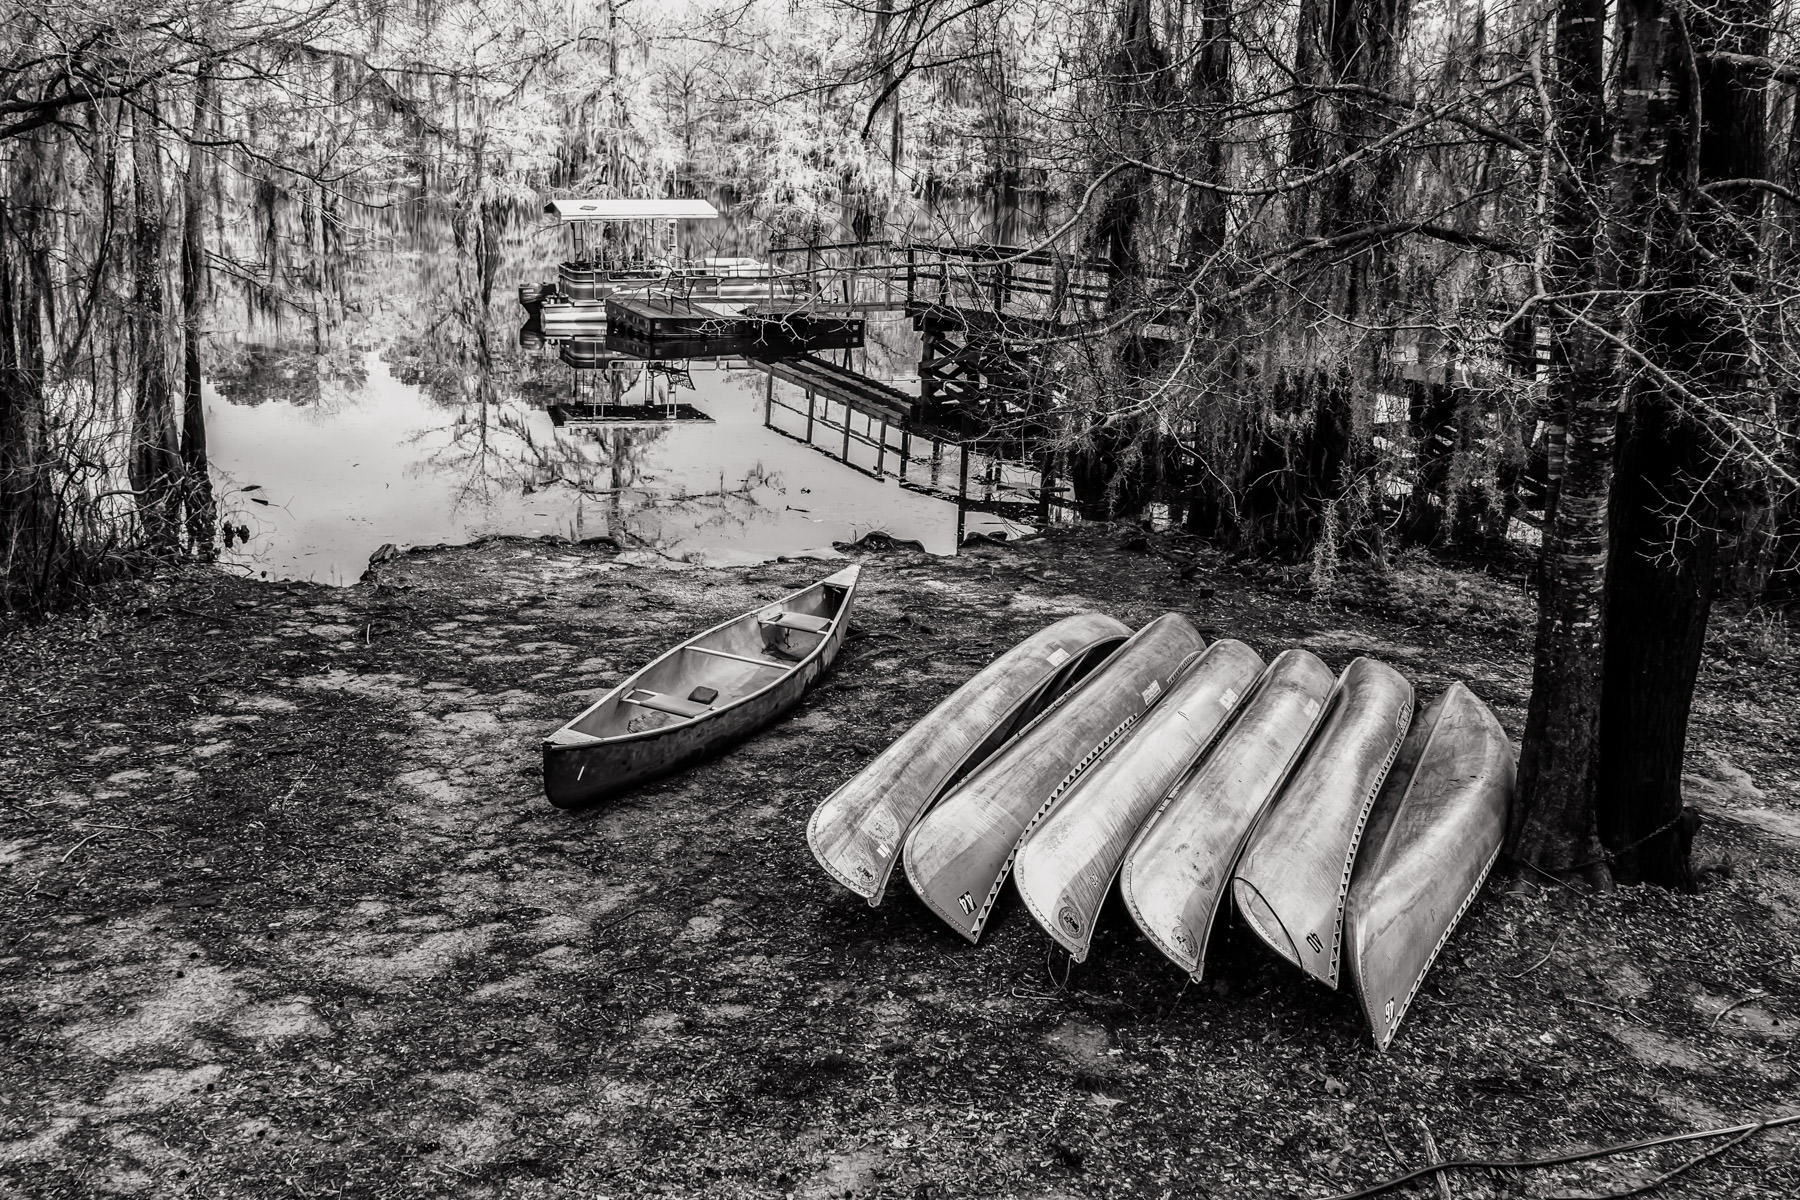 Canoes ashore at Caddo Lake State Park, Texas.